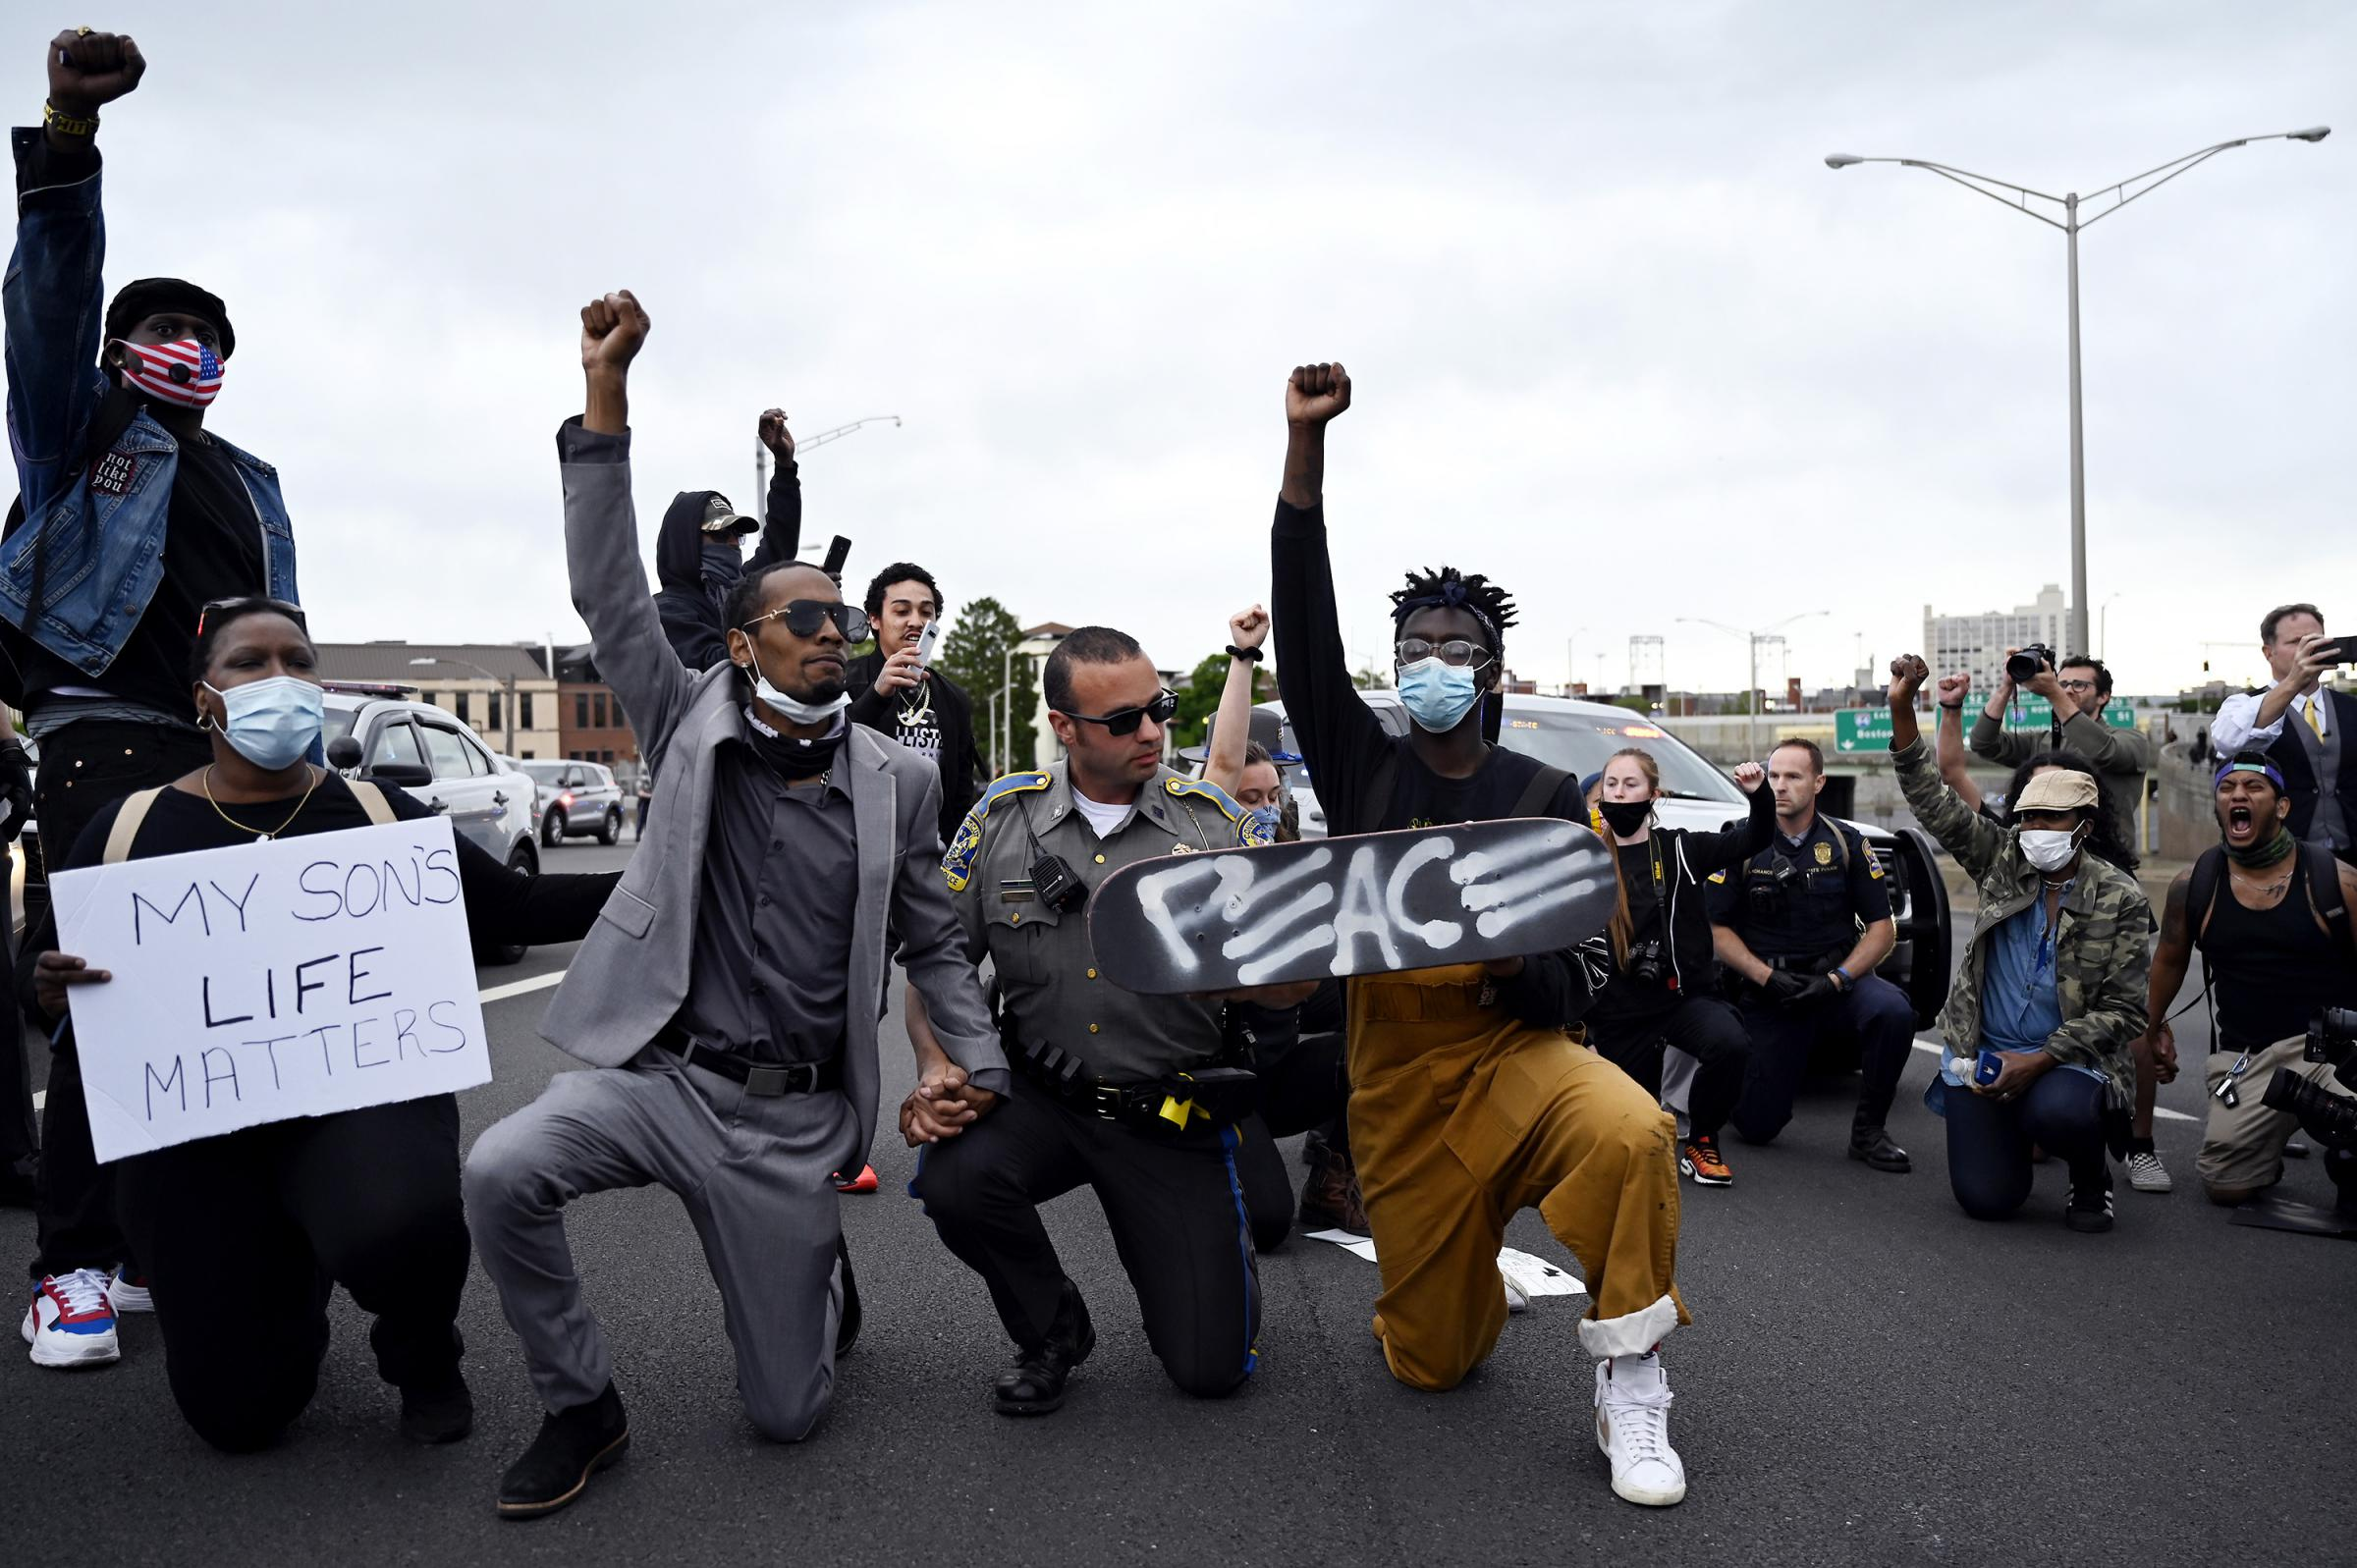 Hartford continues to protest the killing of George Floyd